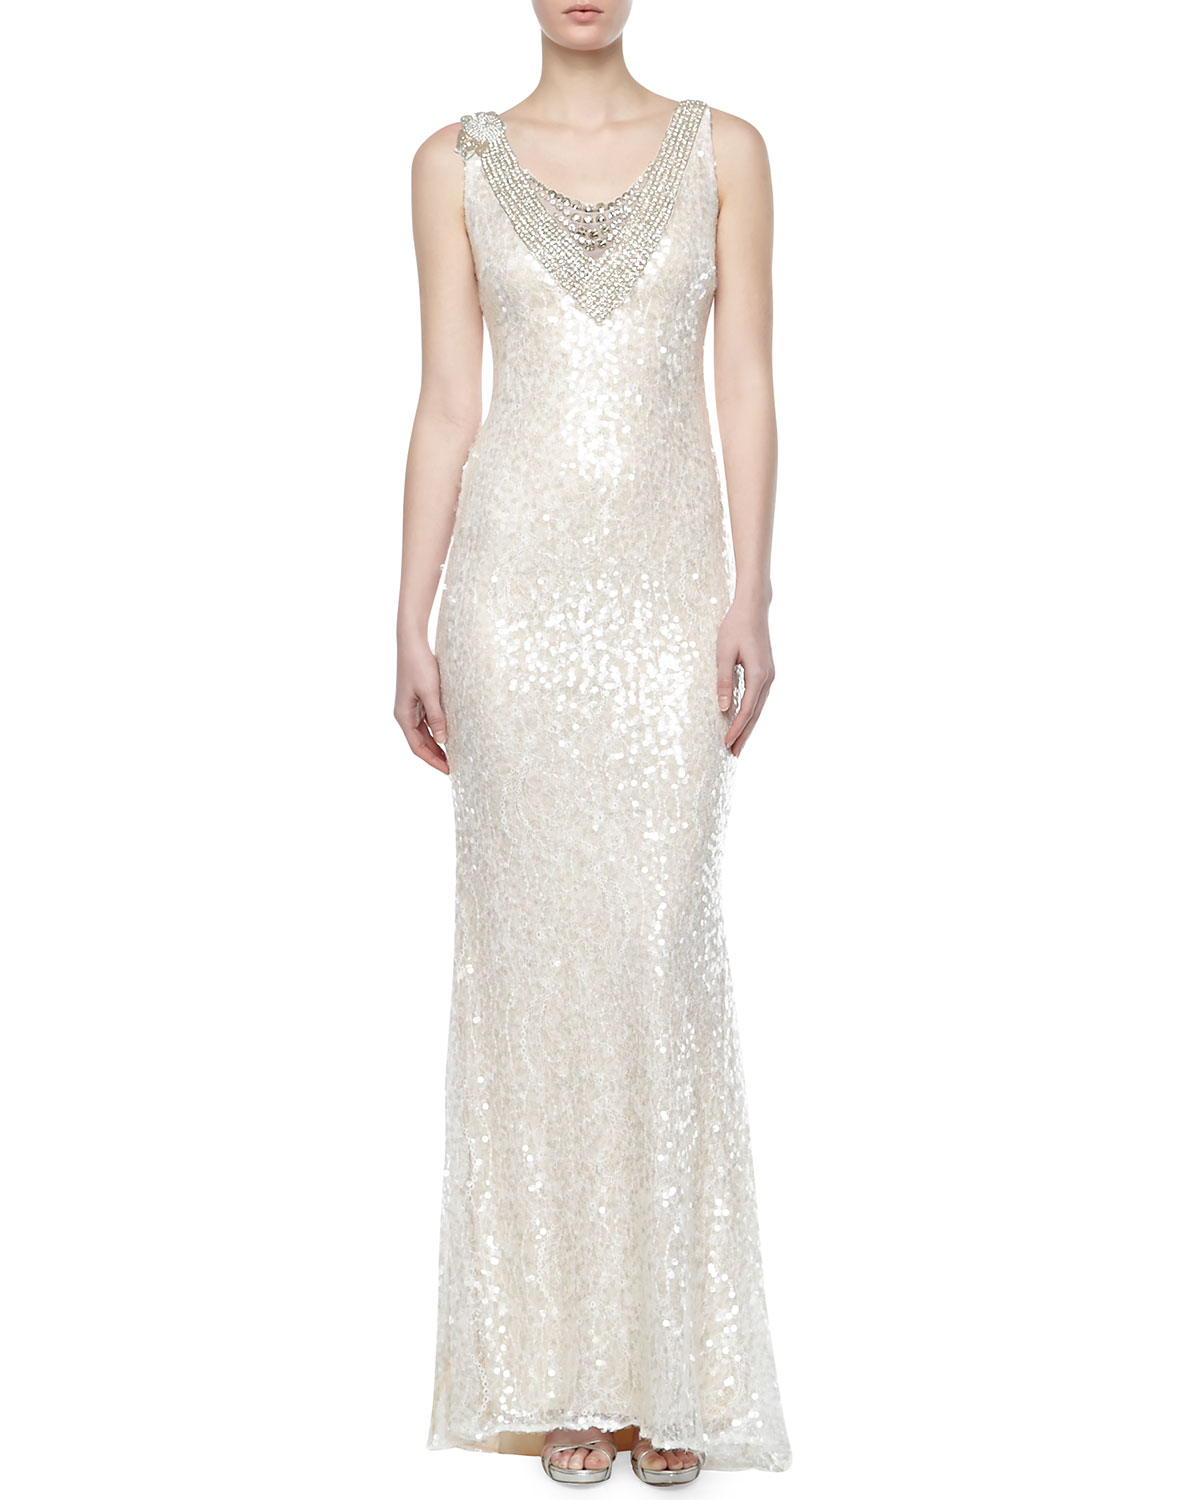 Kay Unger New York Lace and Sequined Double V Neck Gown